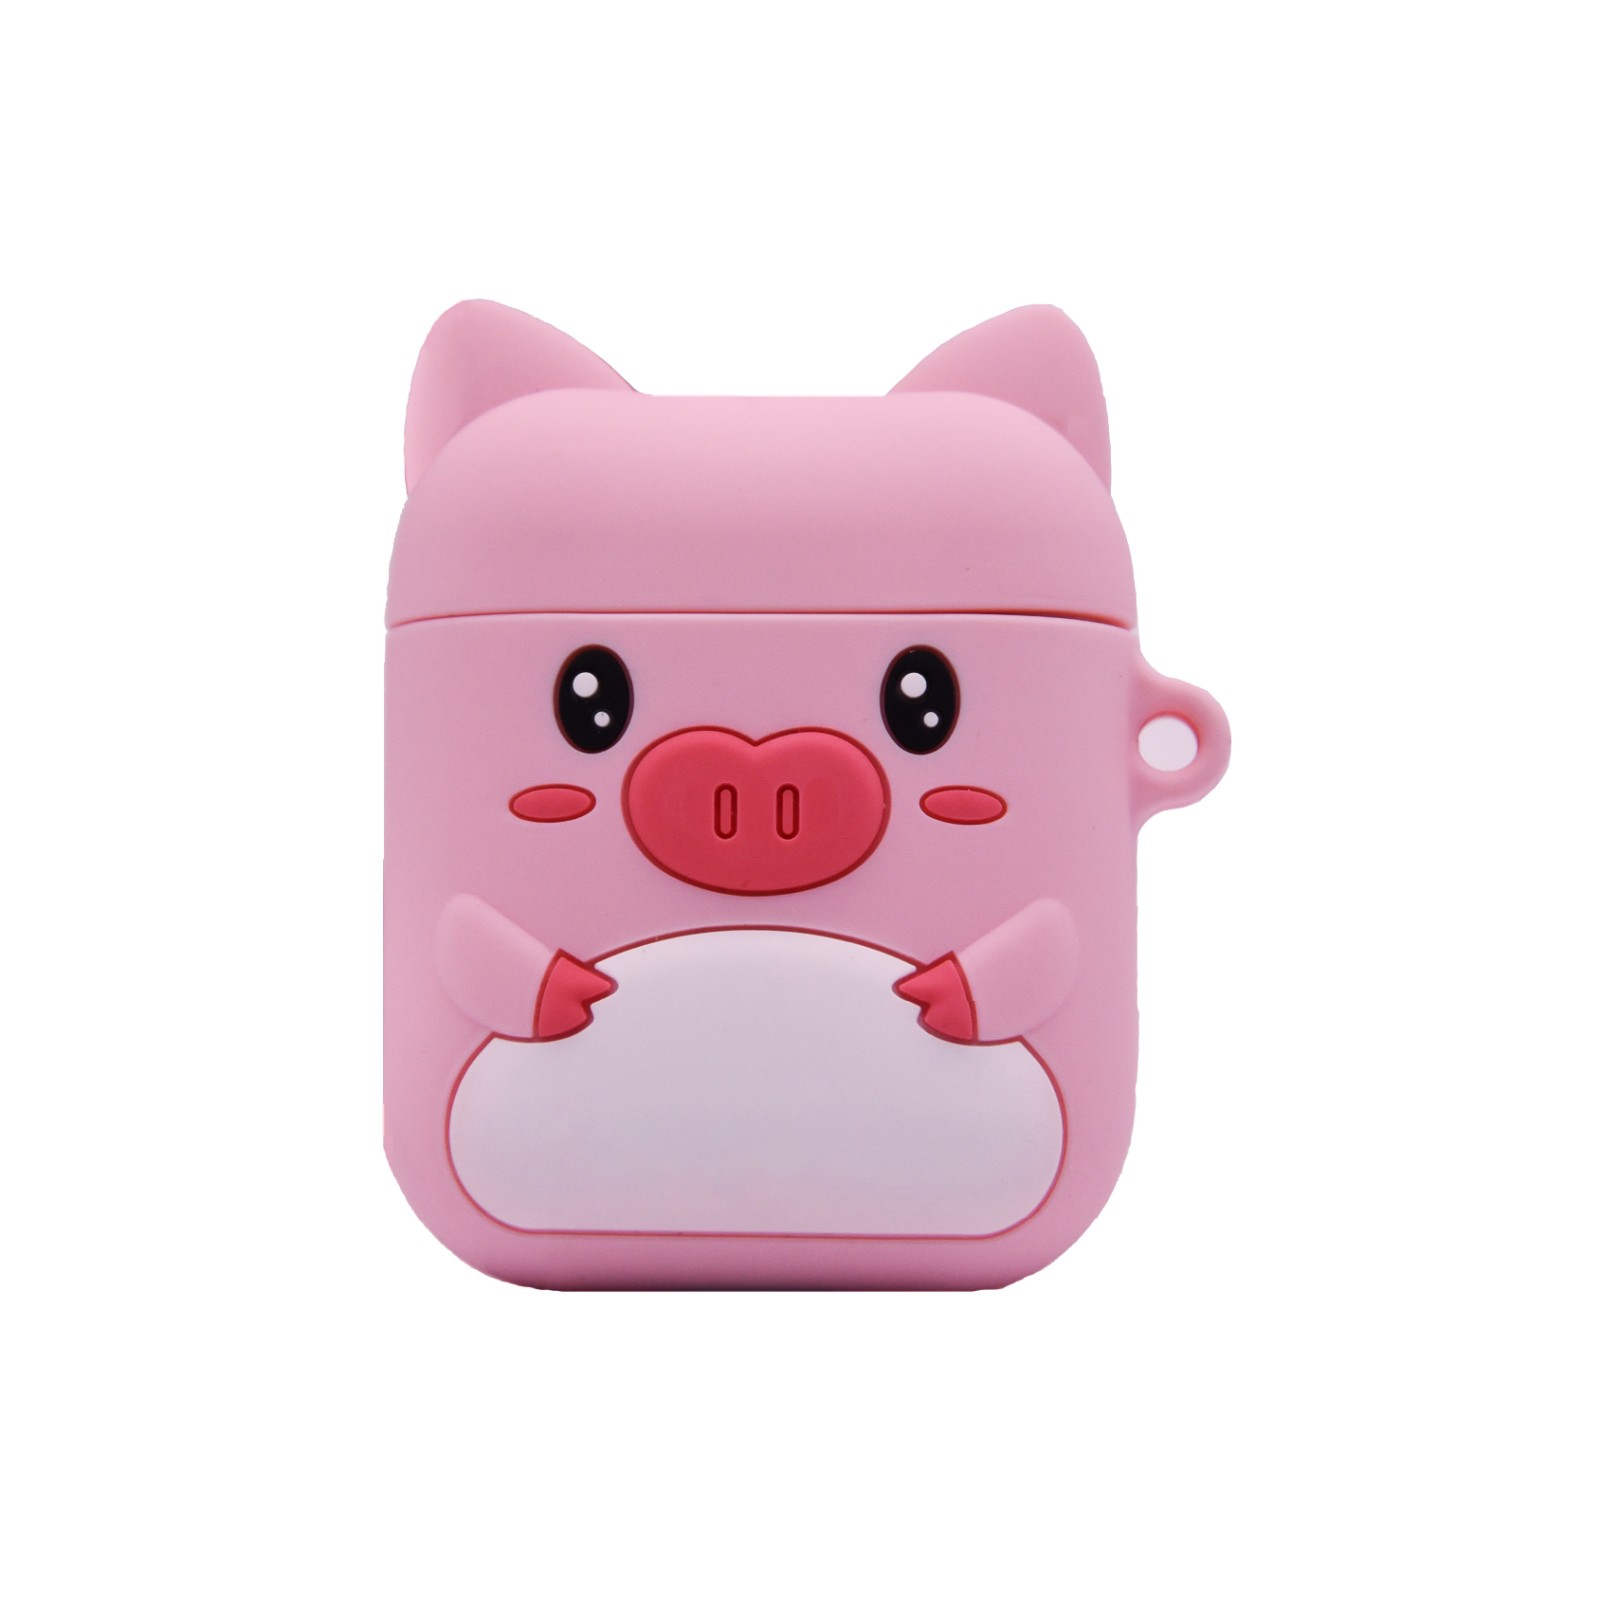 ZheRunTai Wholesale airpod case cover suppliers suitable for phones-3